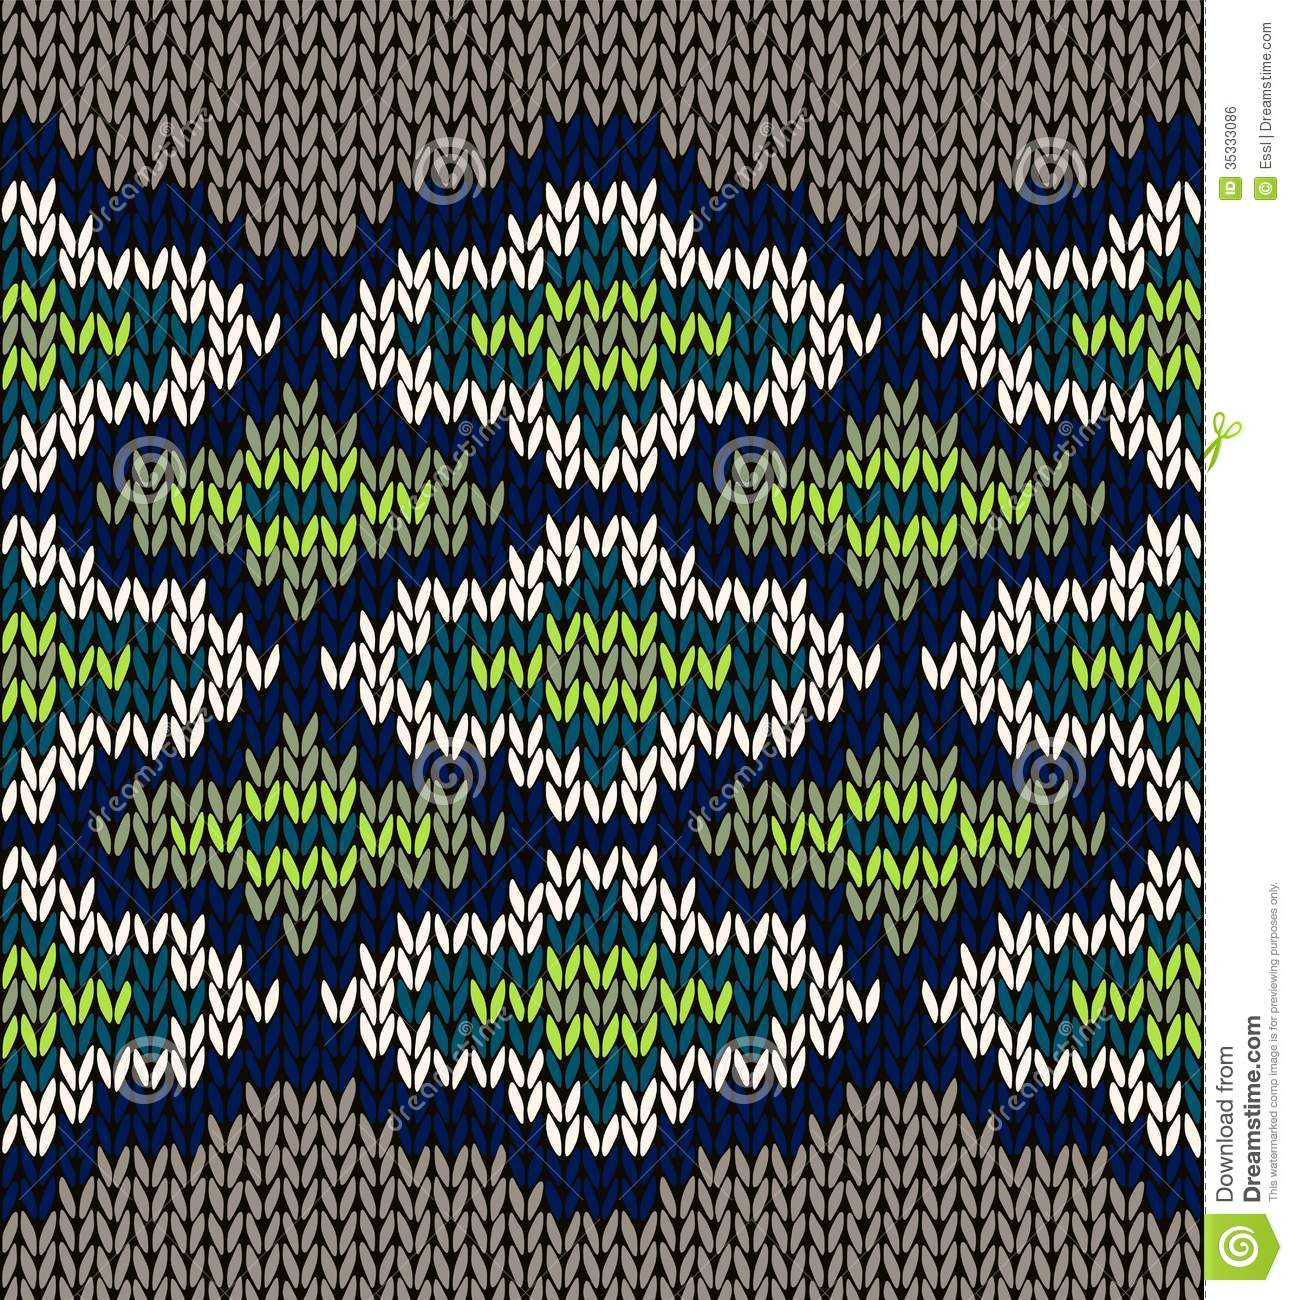 Knit Seamless Jacquard Ornament Texture Royalty Free Stock